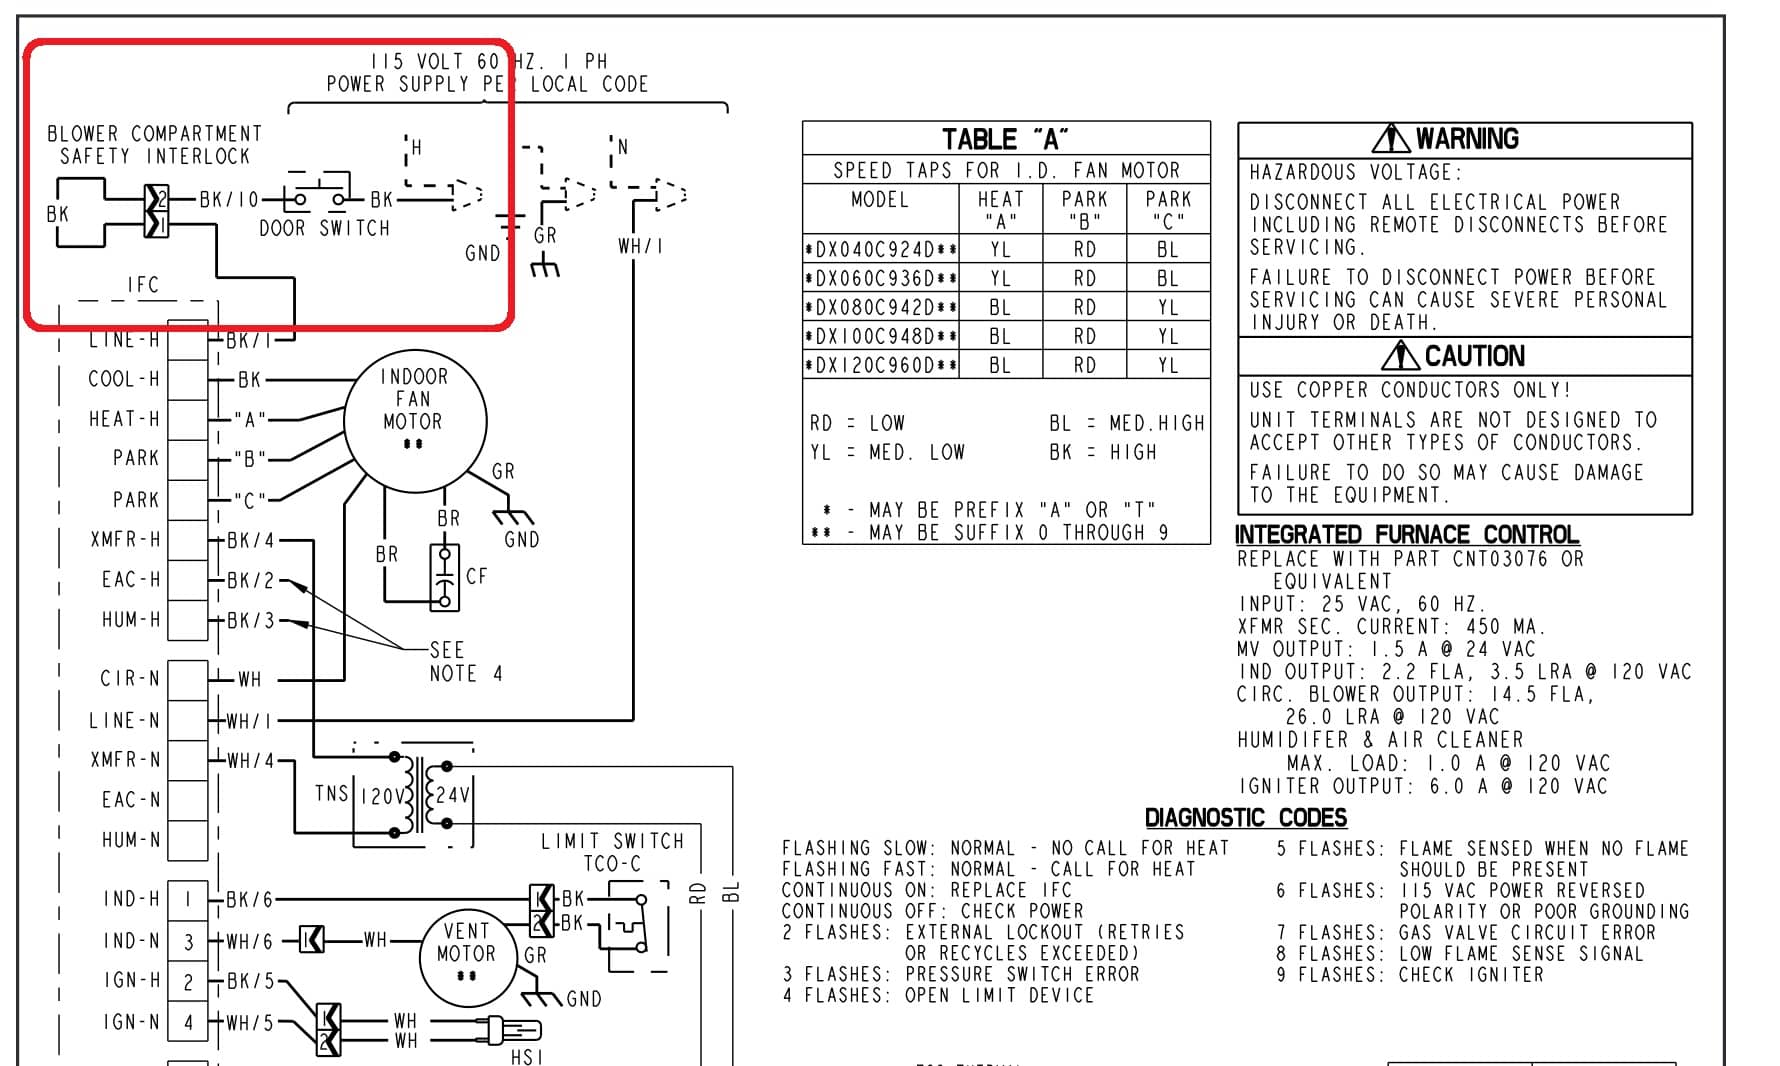 Blew Up My Trane Xe1000 Any Wiring Help 64644 further Trane Filter Location as well Trane Xr80 Diagram besides GE Condenser FAN MOTOR 1 4 HP 208 230v 5KCP39DFP101AS 350369600783 furthermore Carrier Electric Heat Sequencer Wiring Diagram. on trane condenser fan motor replacement